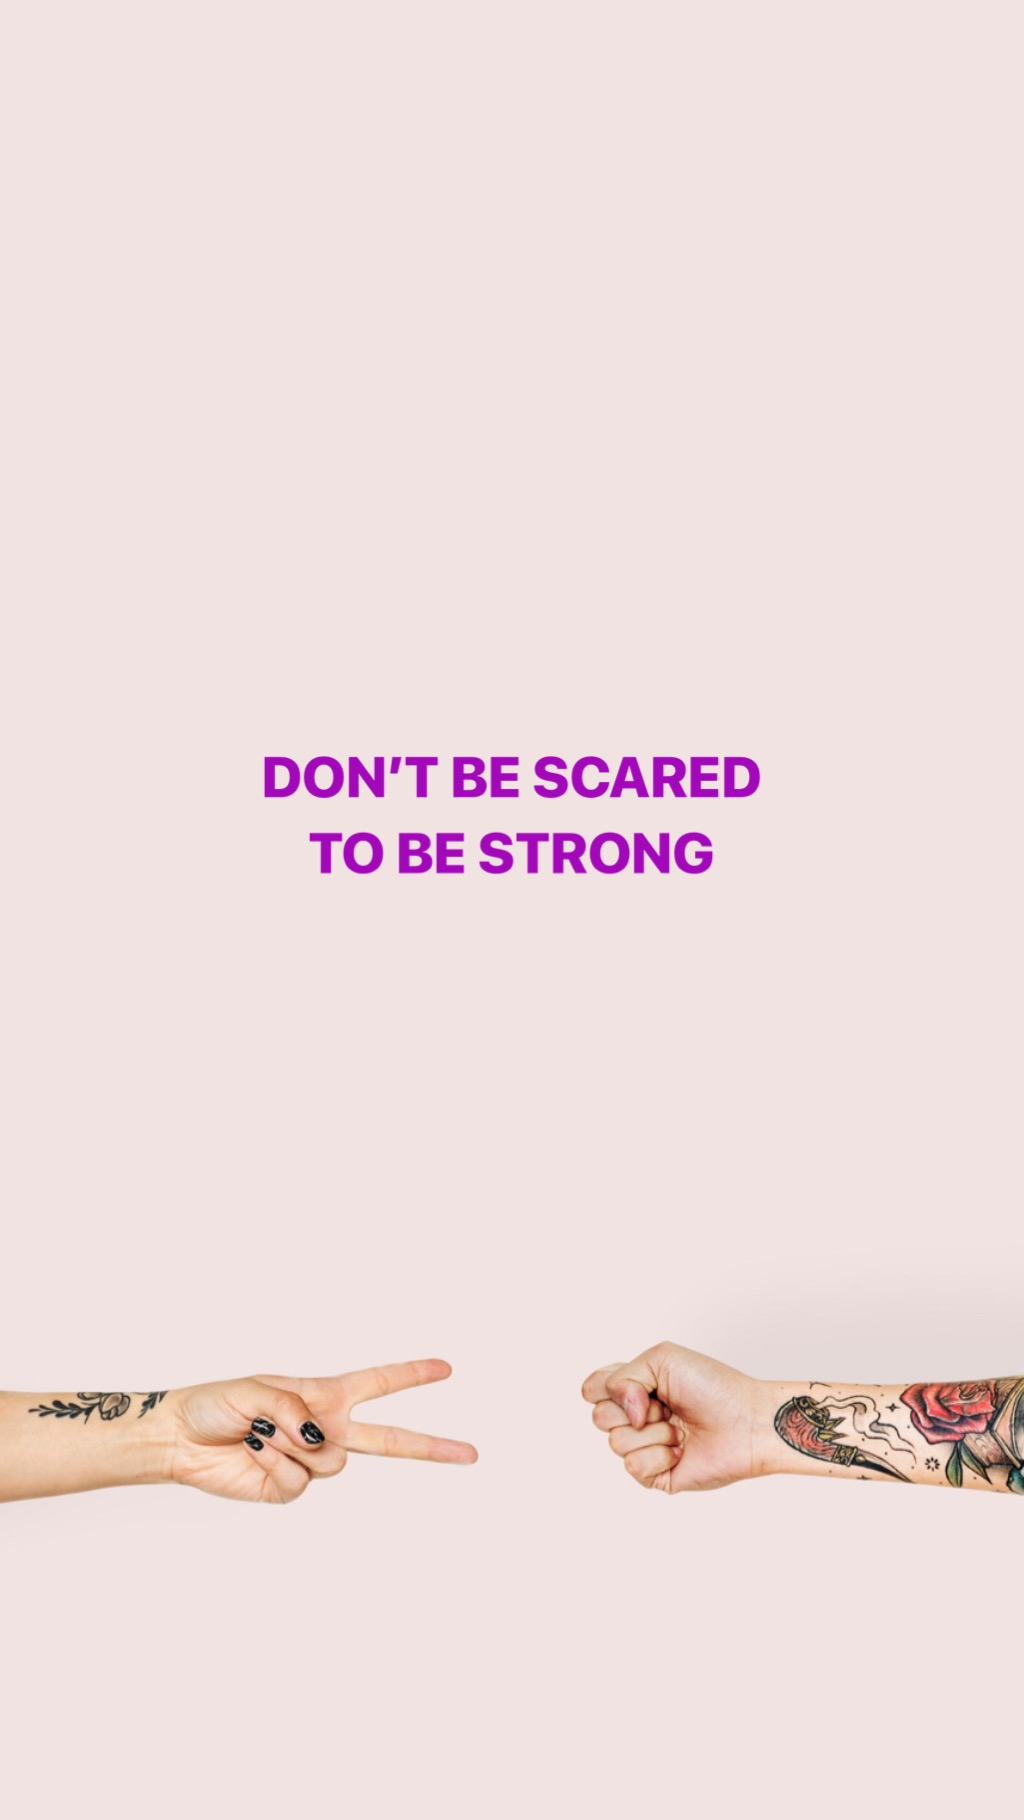 Alix de Bretagne - Don't be afraid to be strong